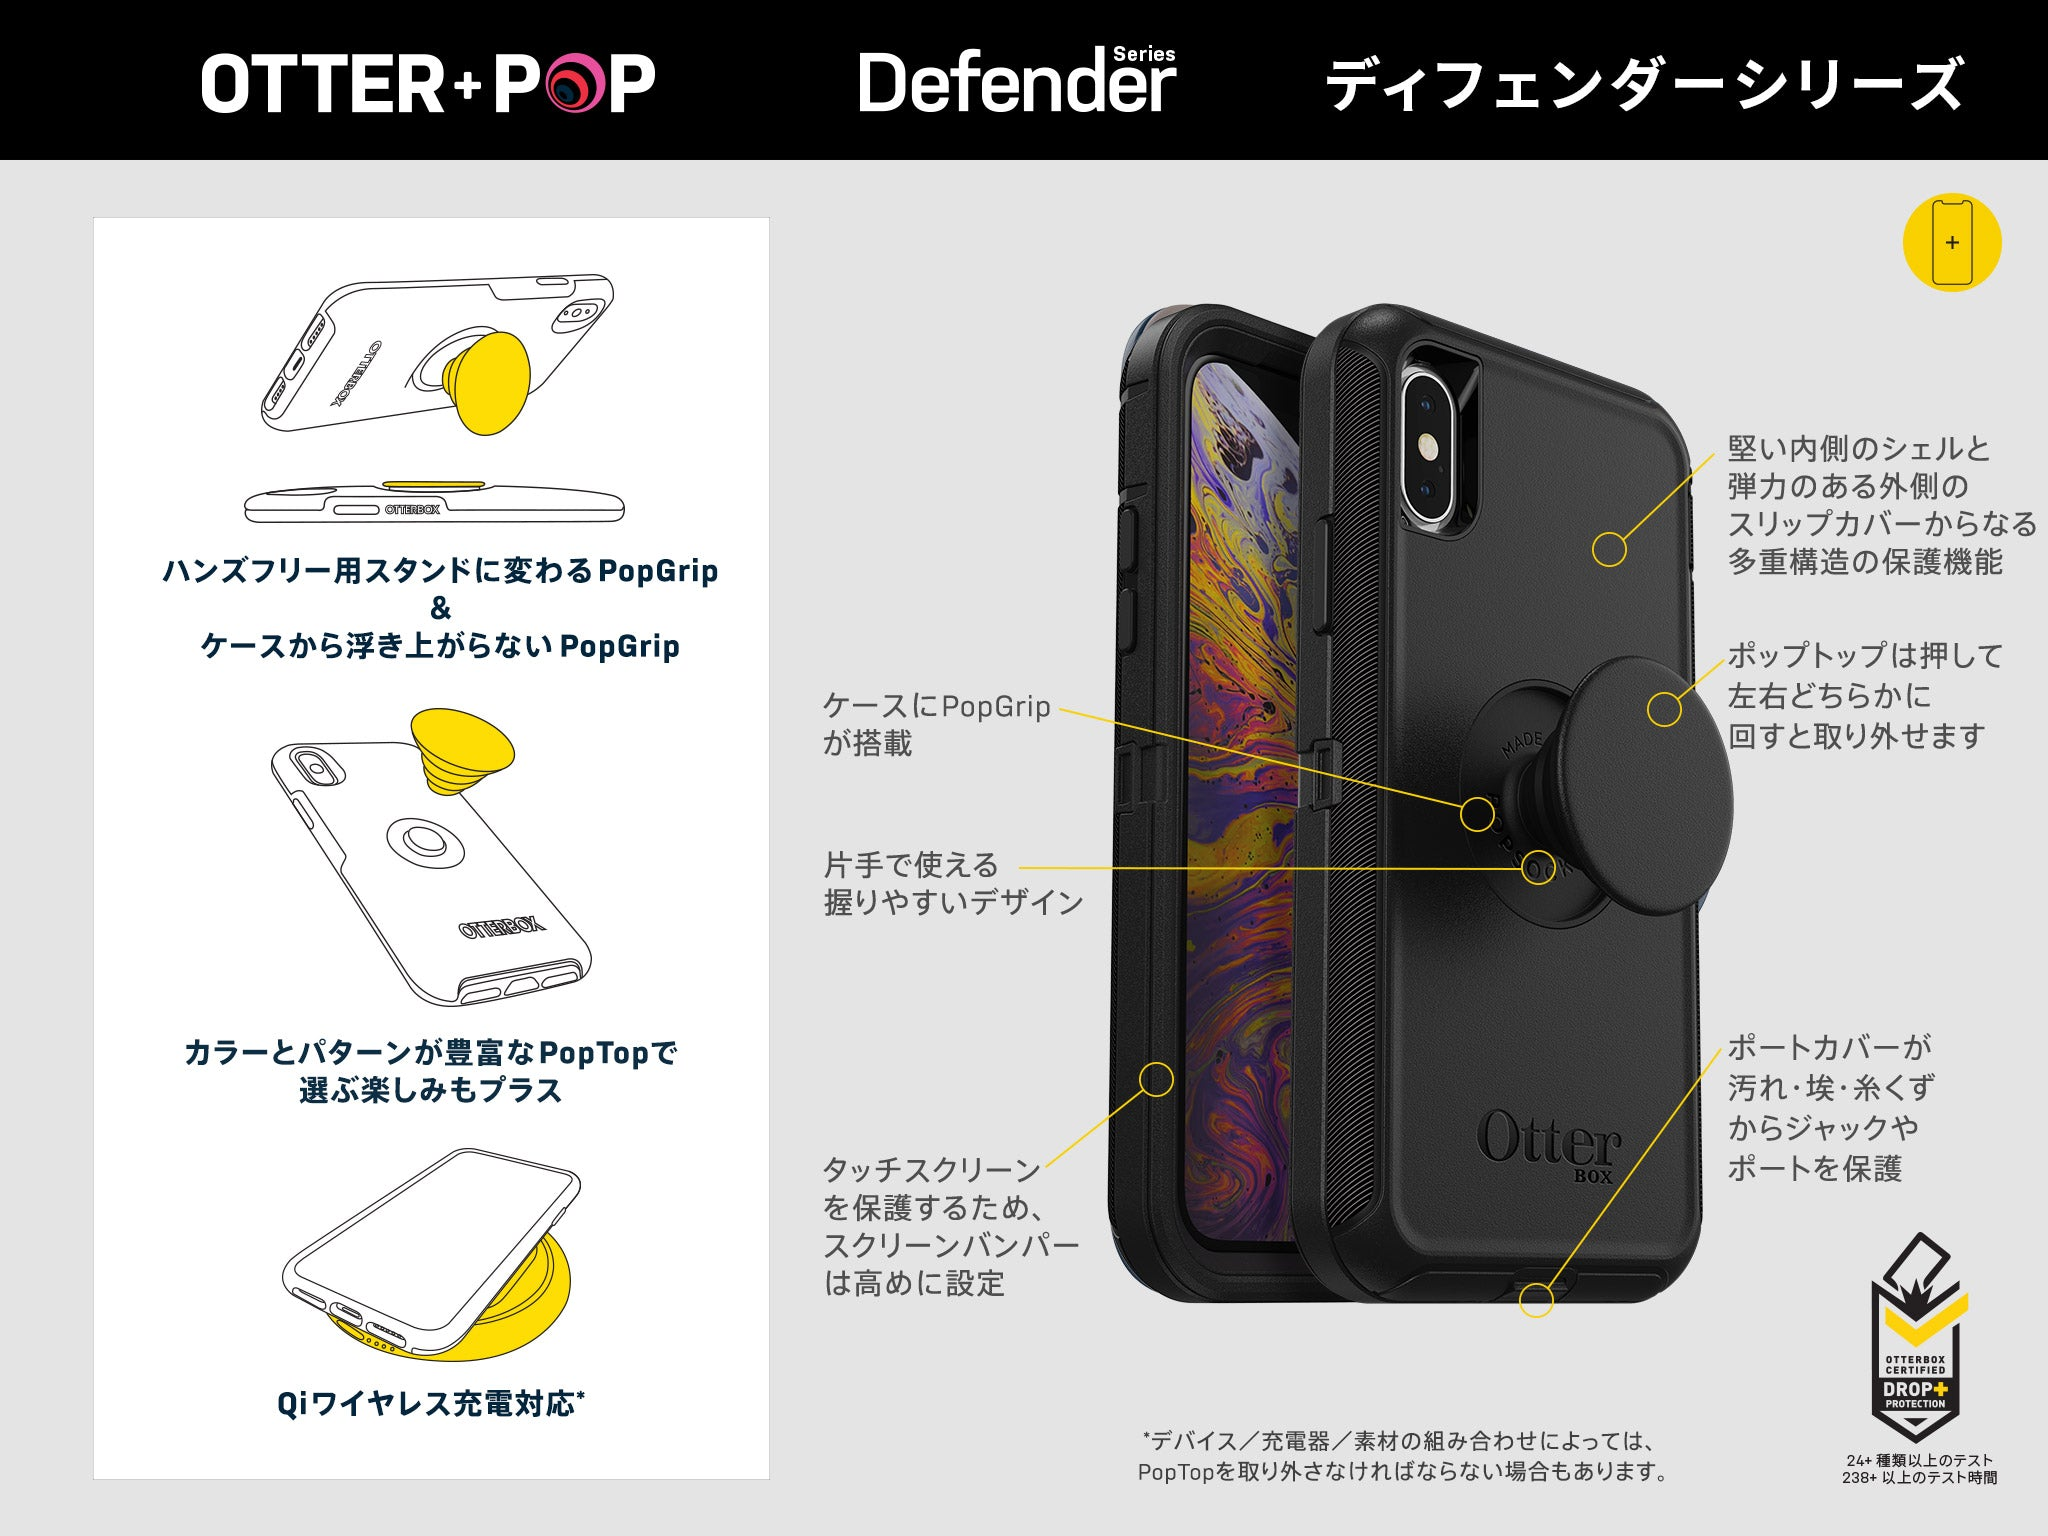 Electronics - OtterBox - OTTER + POP DEFENDER for iPhone SE 第2世代/8/7